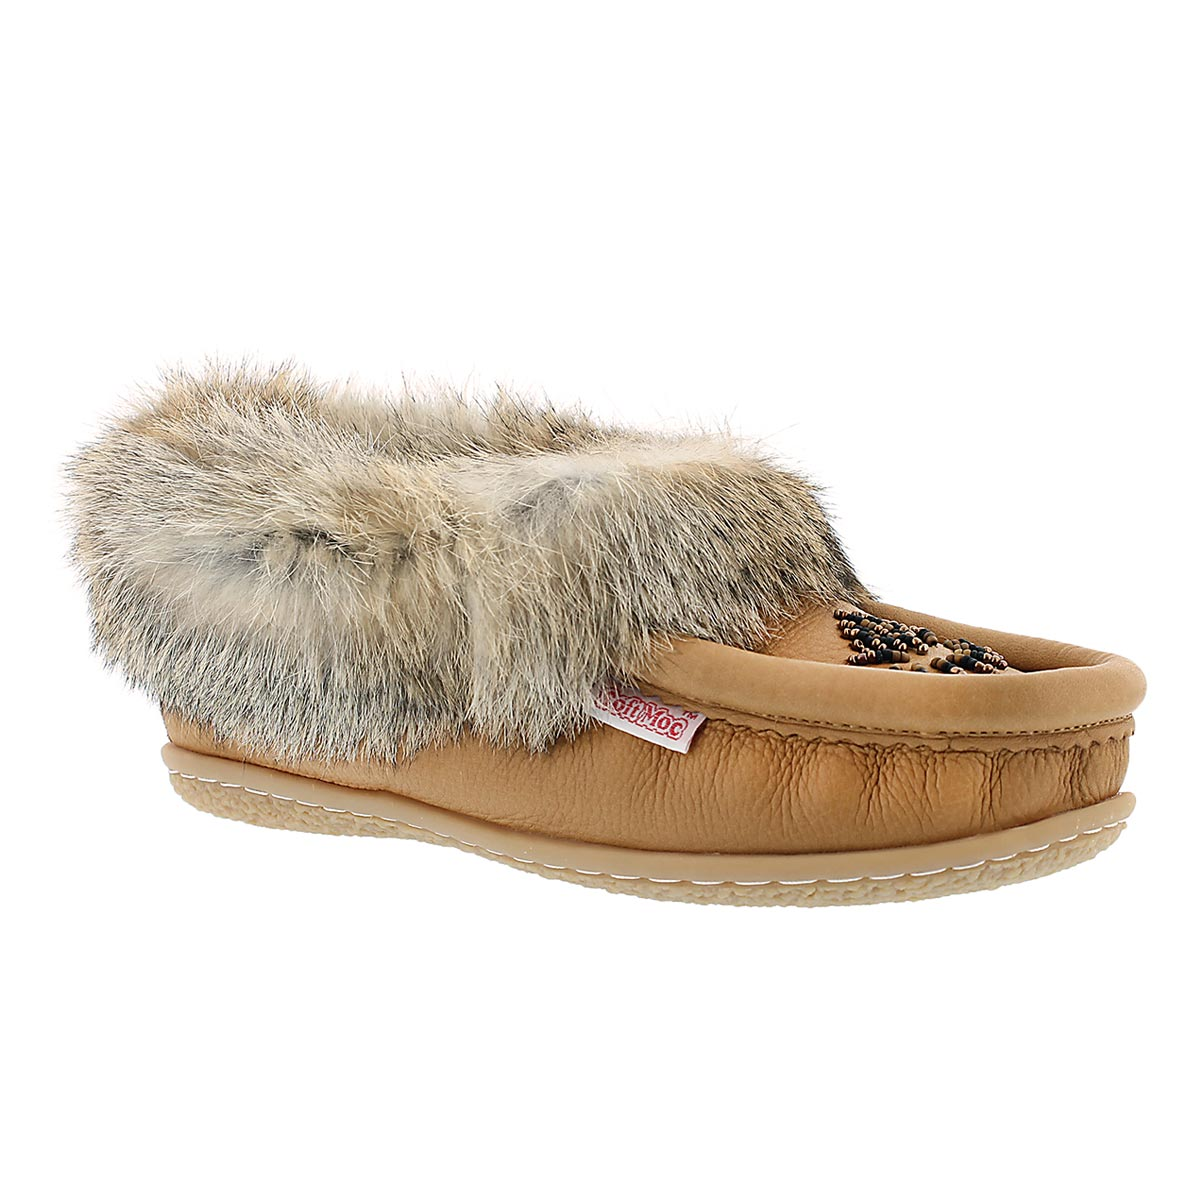 Women's CUTE 4 cork rabbit fur leather moccasins